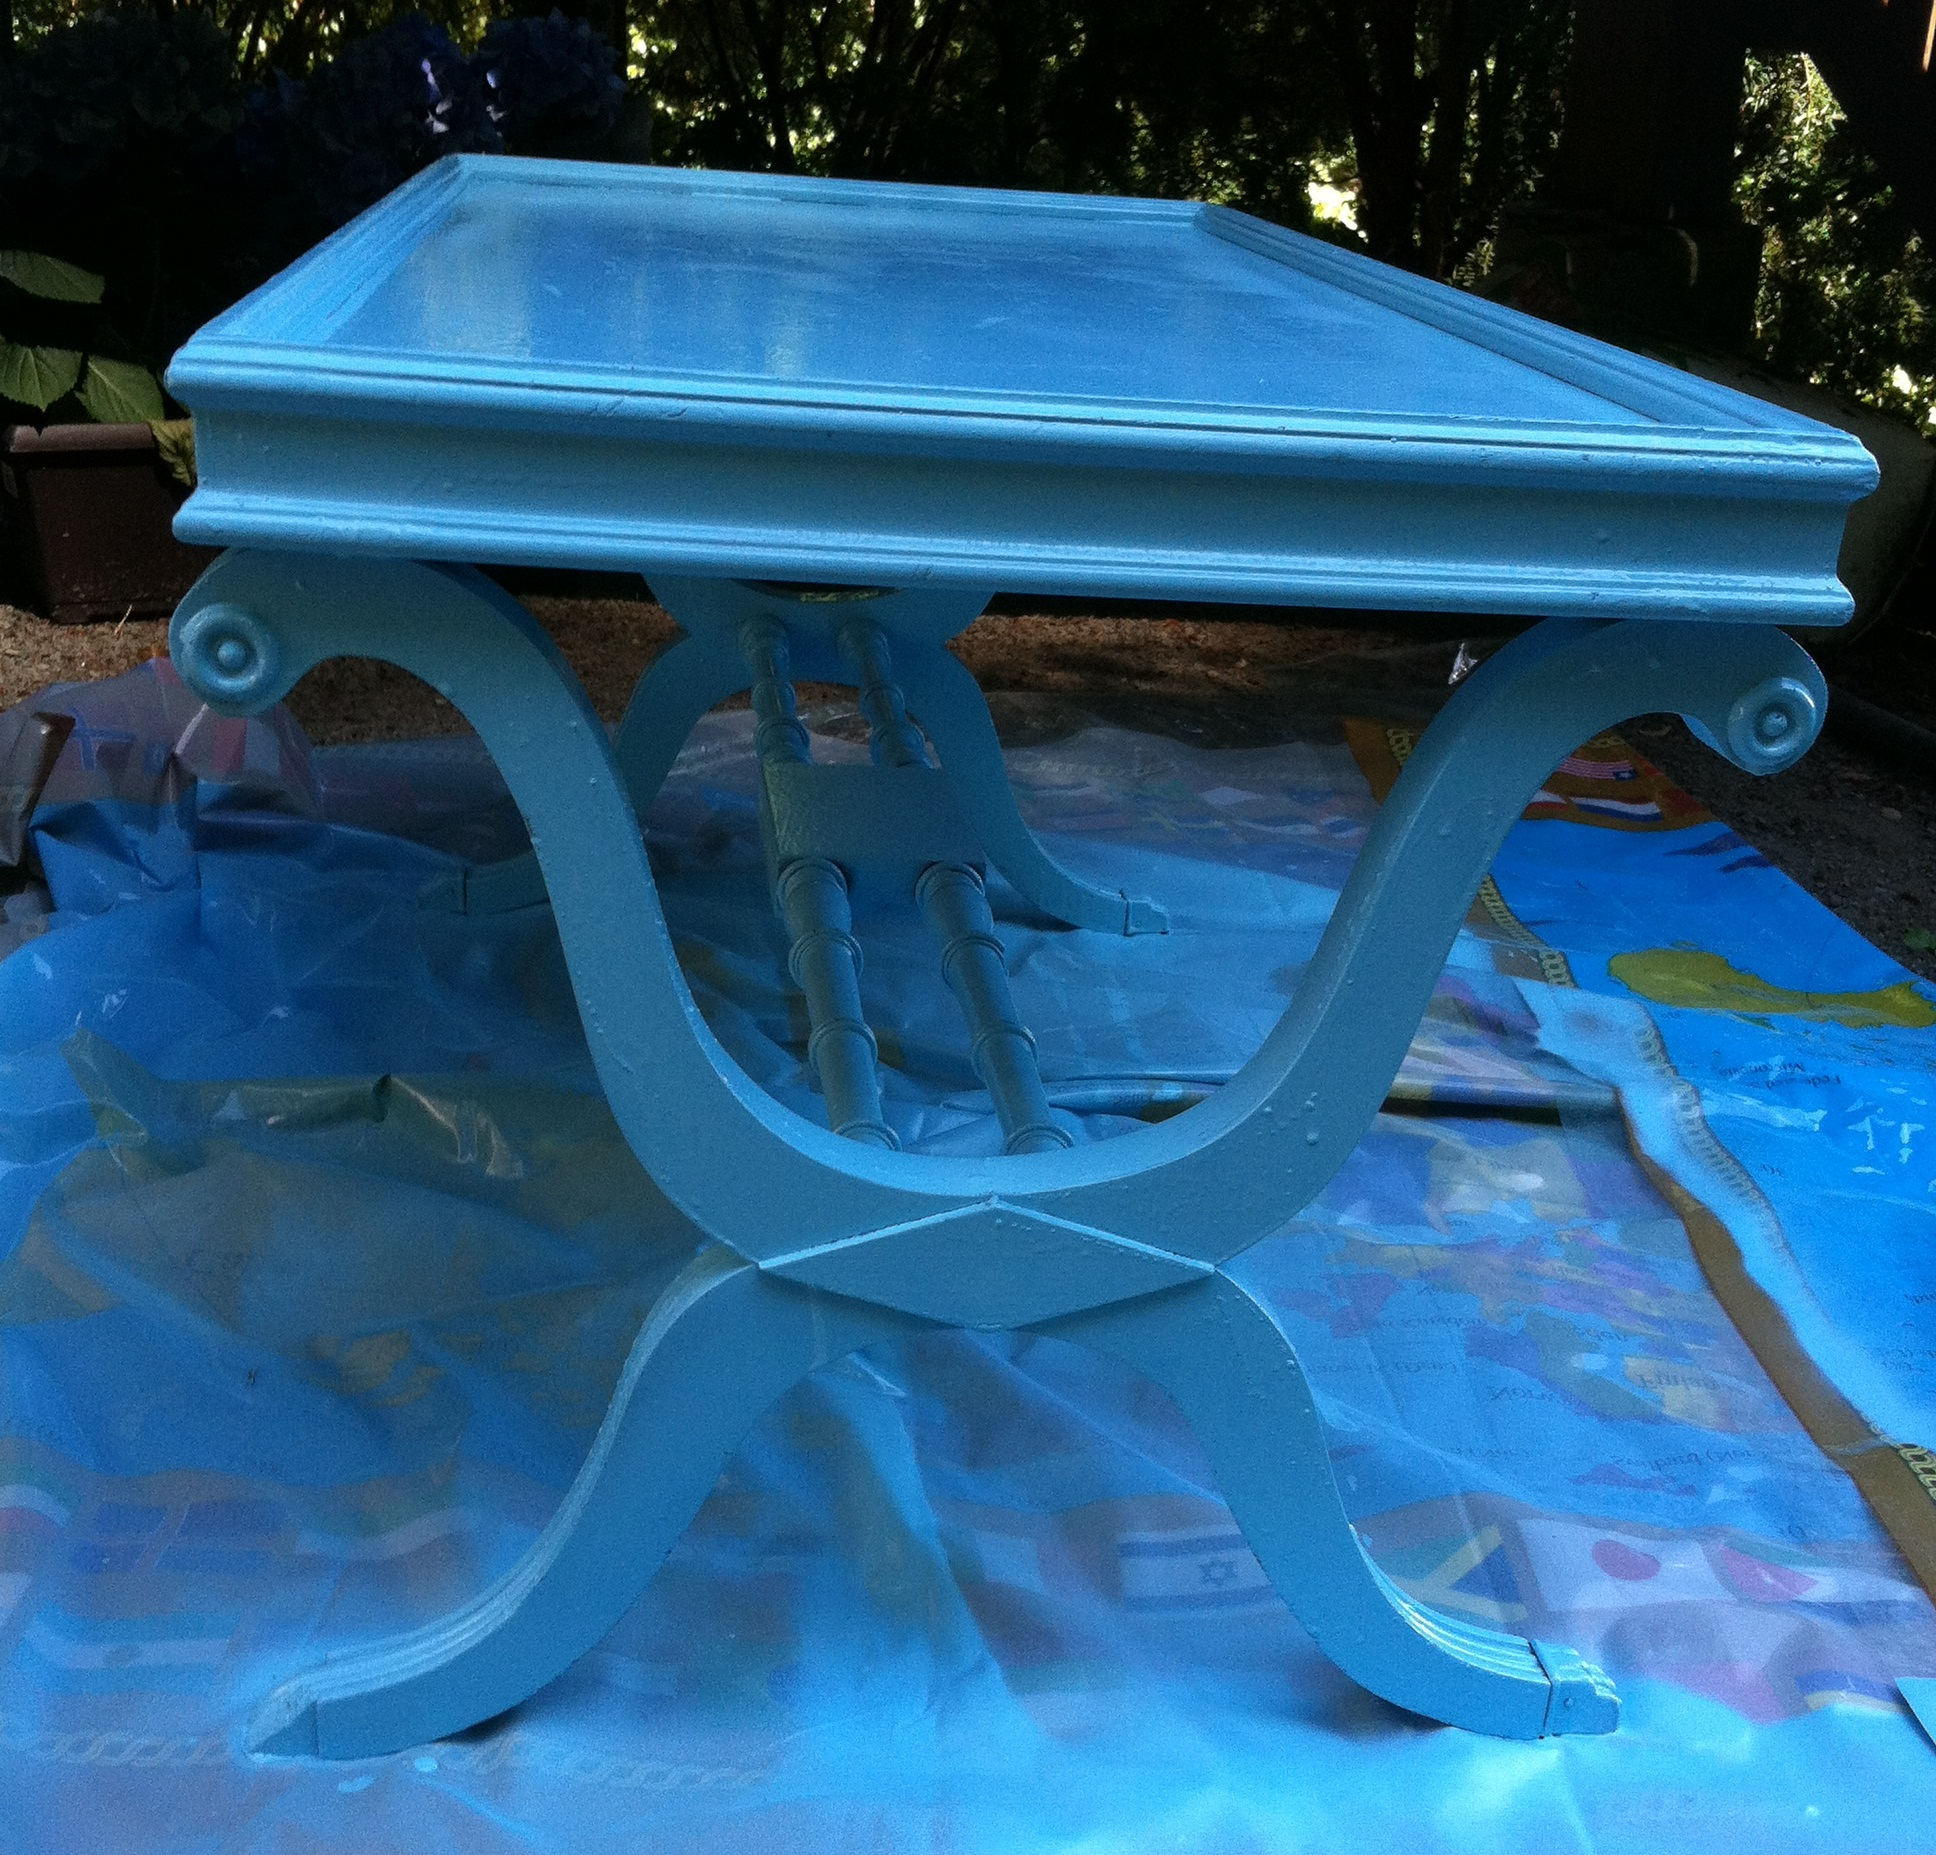 Then I Glued The Beach Glass To The Top.